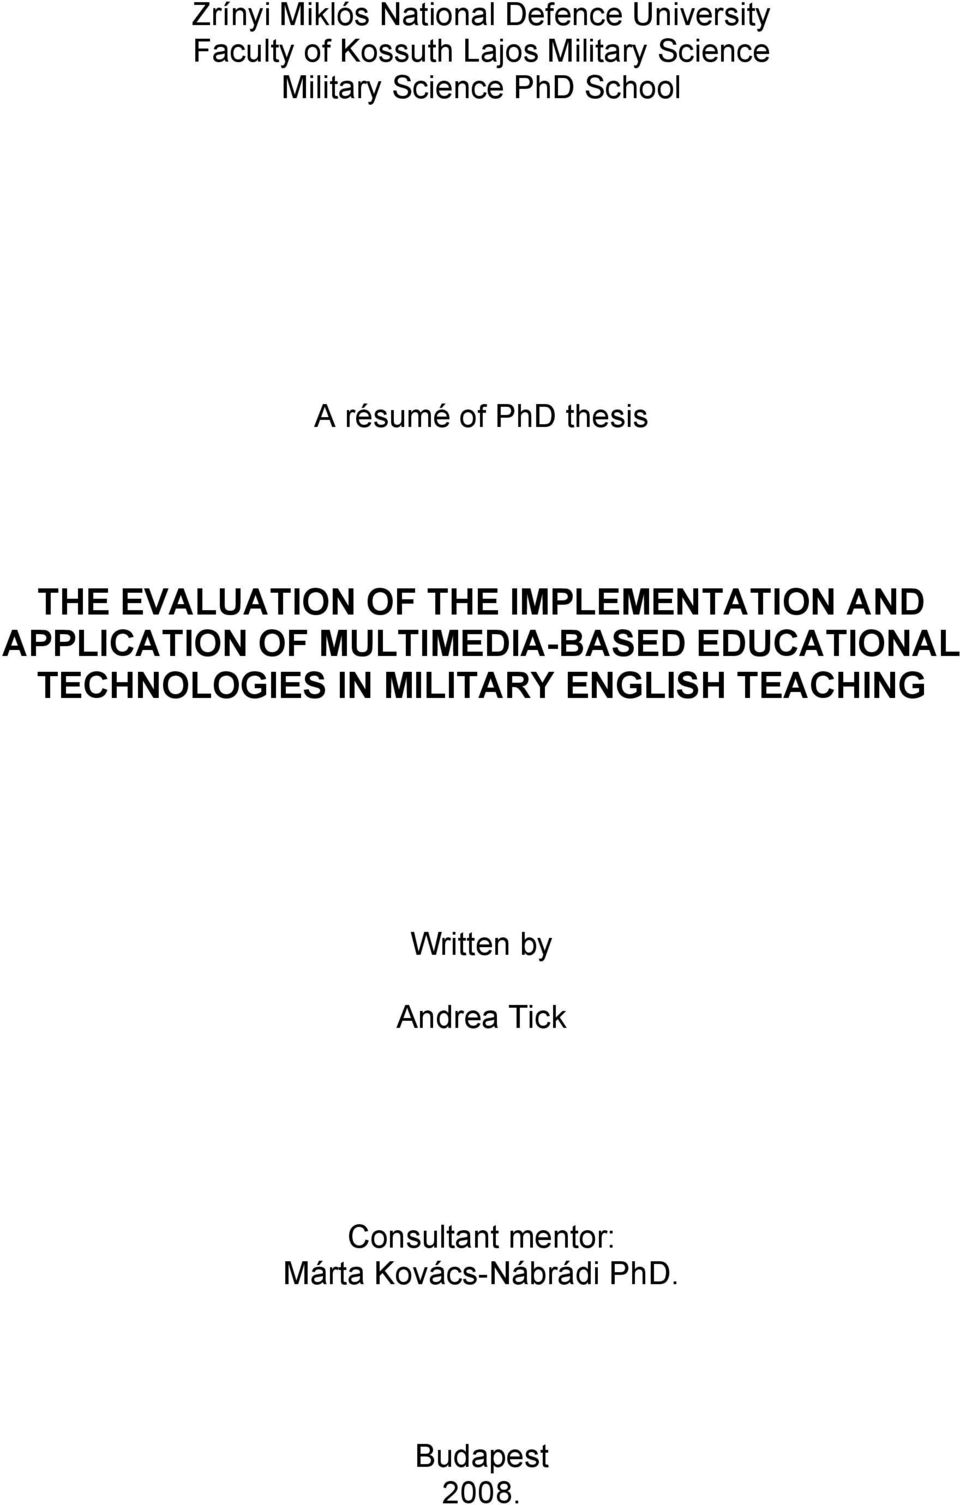 IMPLEMENTATION AND APPLICATION OF MULTIMEDIA-BASED EDUCATIONAL TECHNOLOGIES IN